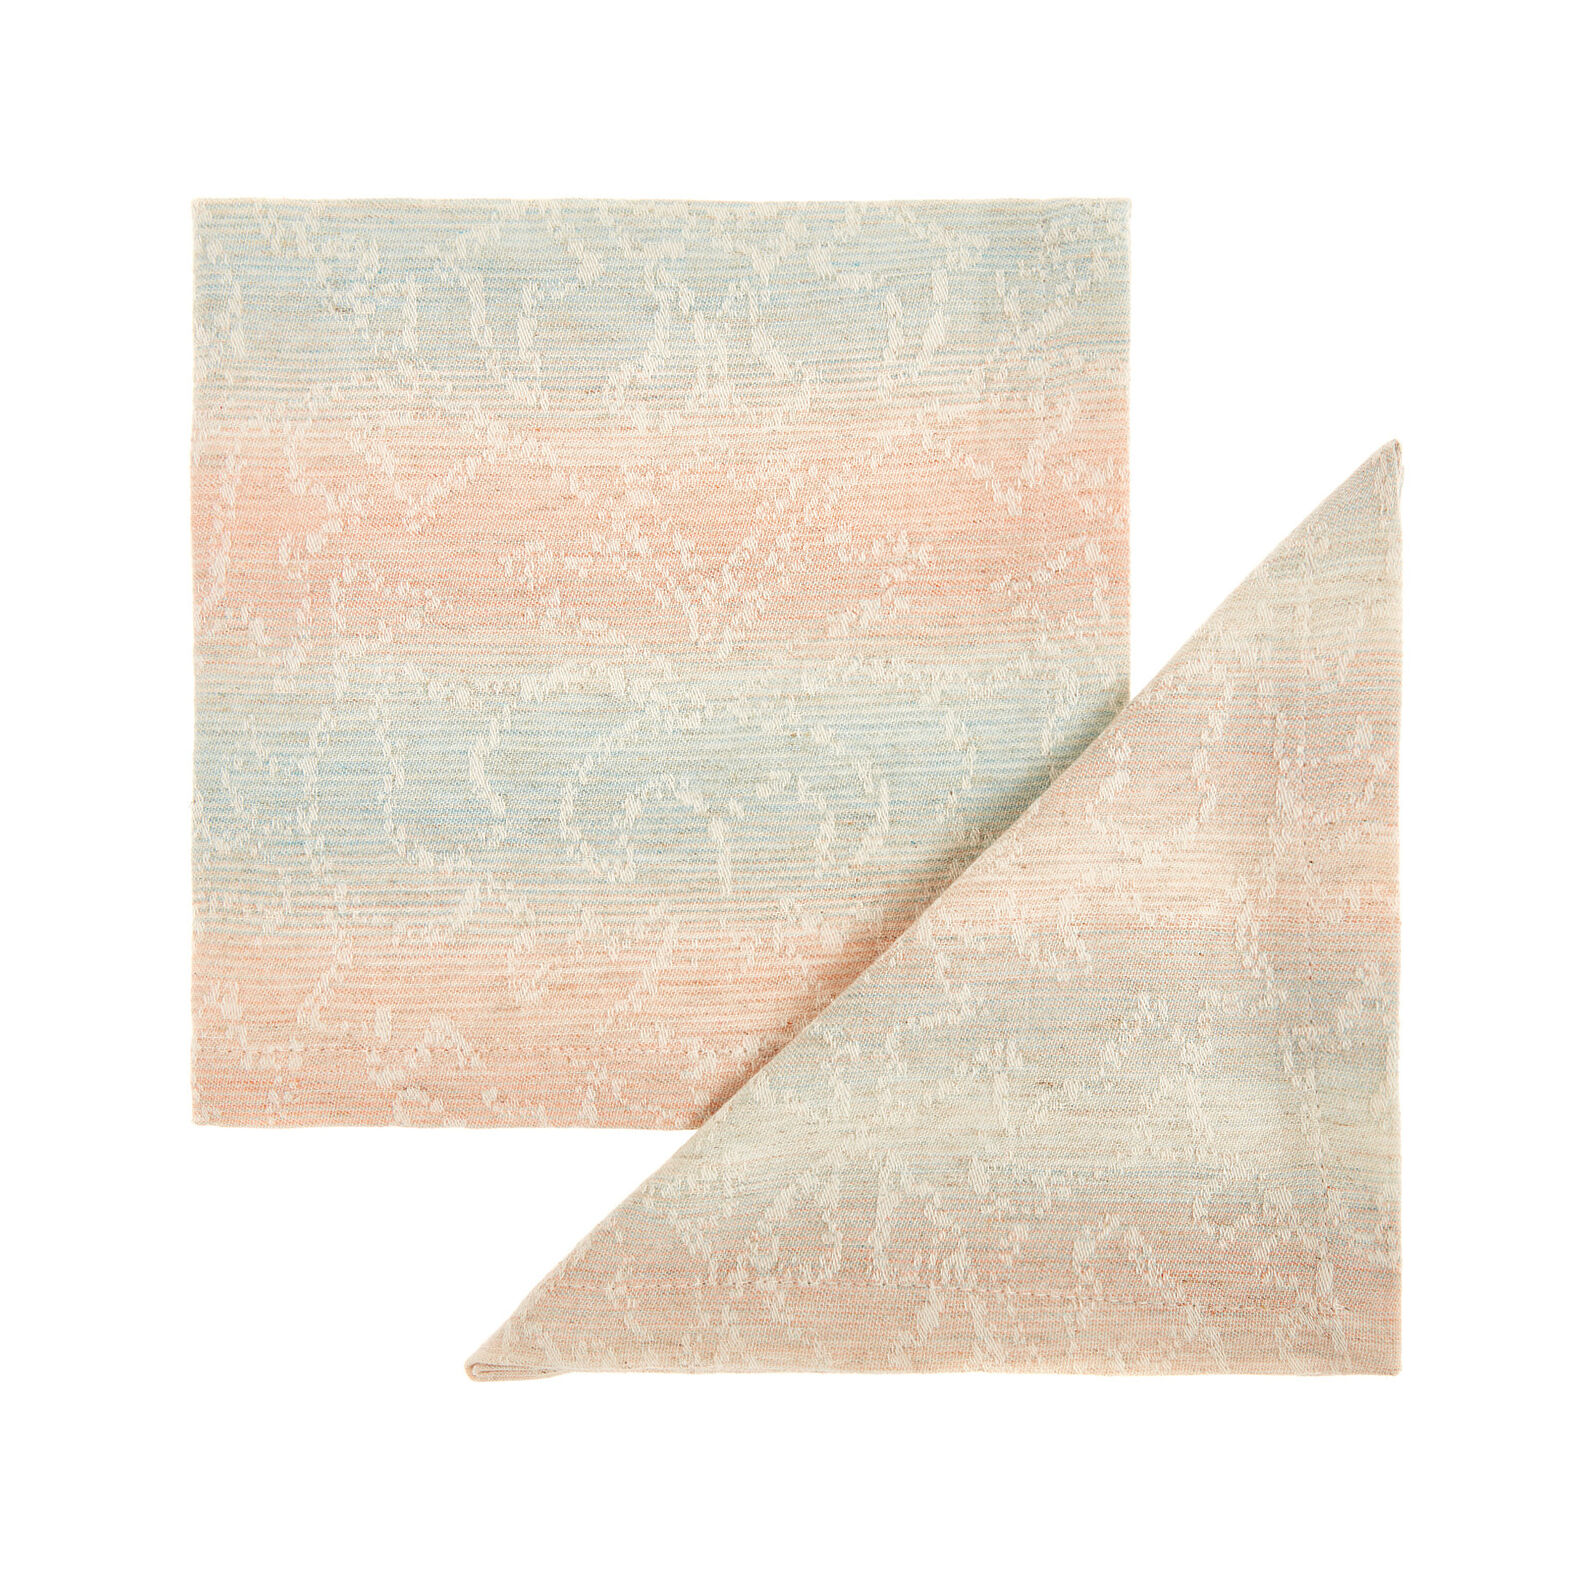 Set of 2 napkins in stonewashed cotton blend with striped motif